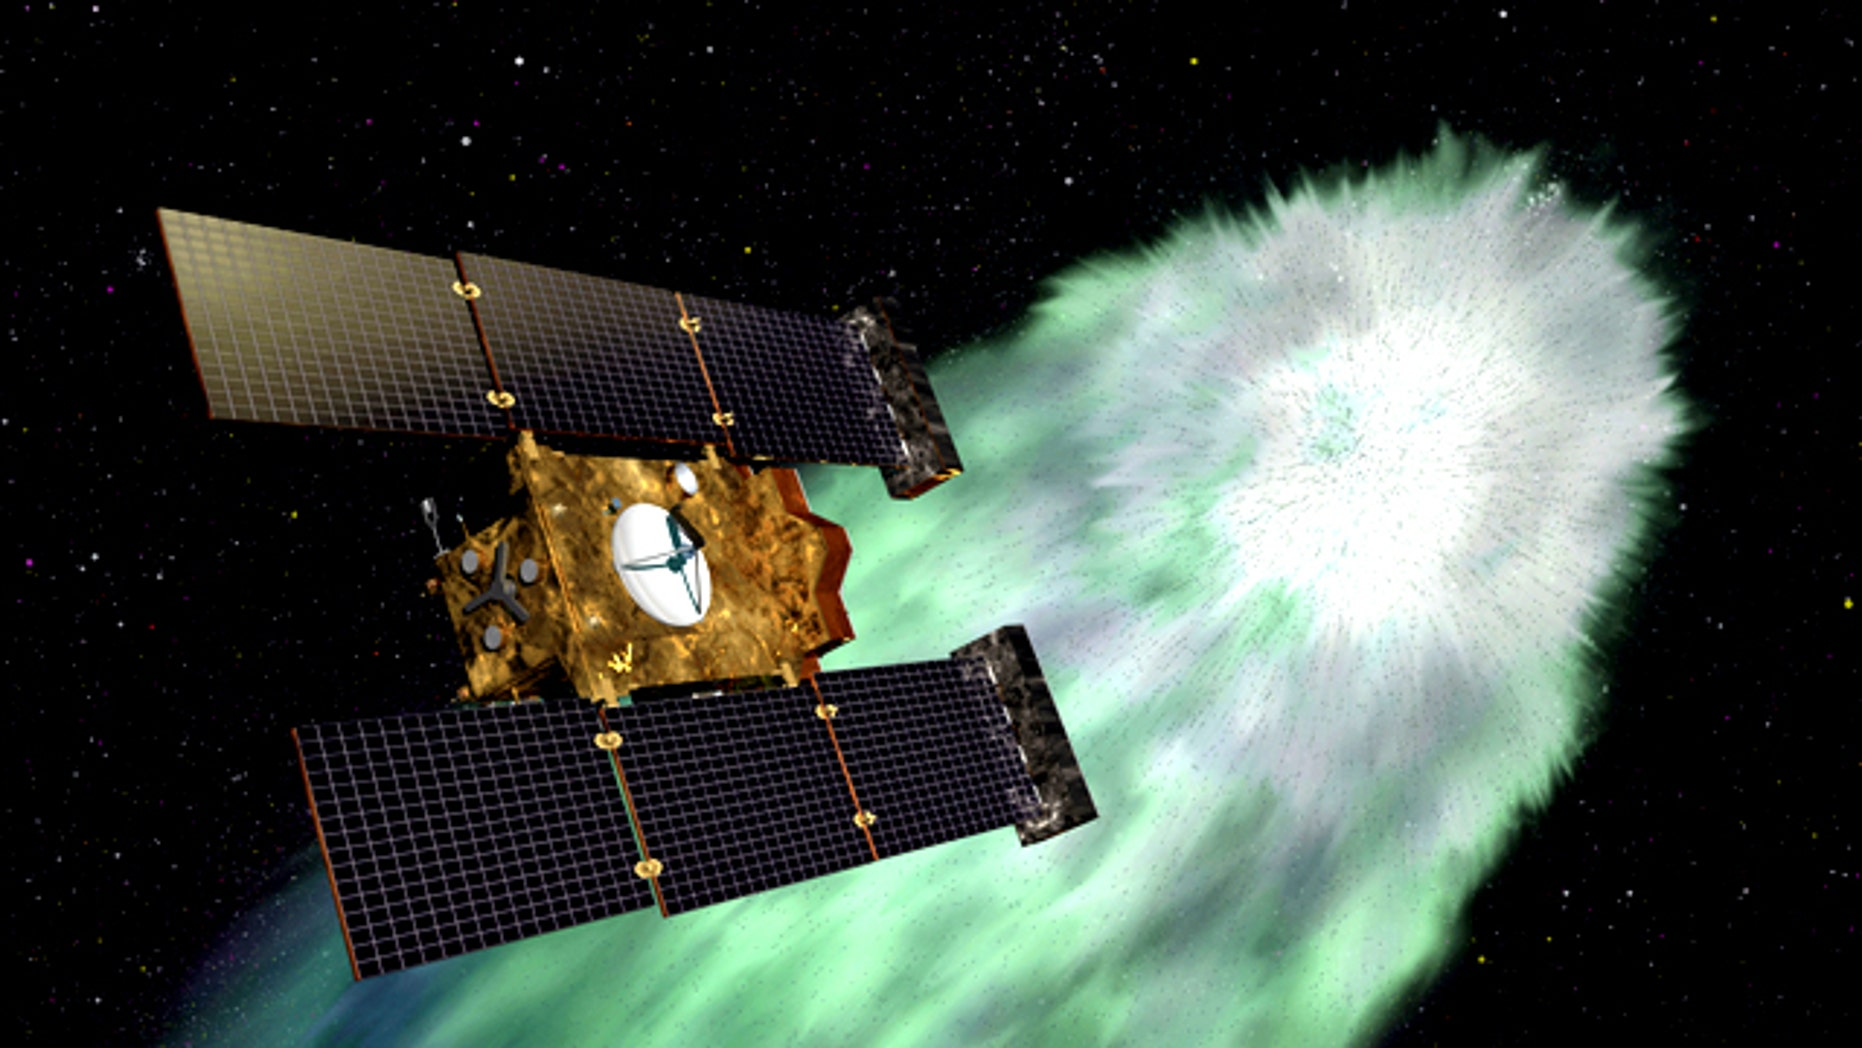 An artist envisions the approach of NASA's Stardust-NExT spacecraft at Comet Tempel 1 -- an encounter that took place on Valentine's Day (Feb. 14) in 2011.